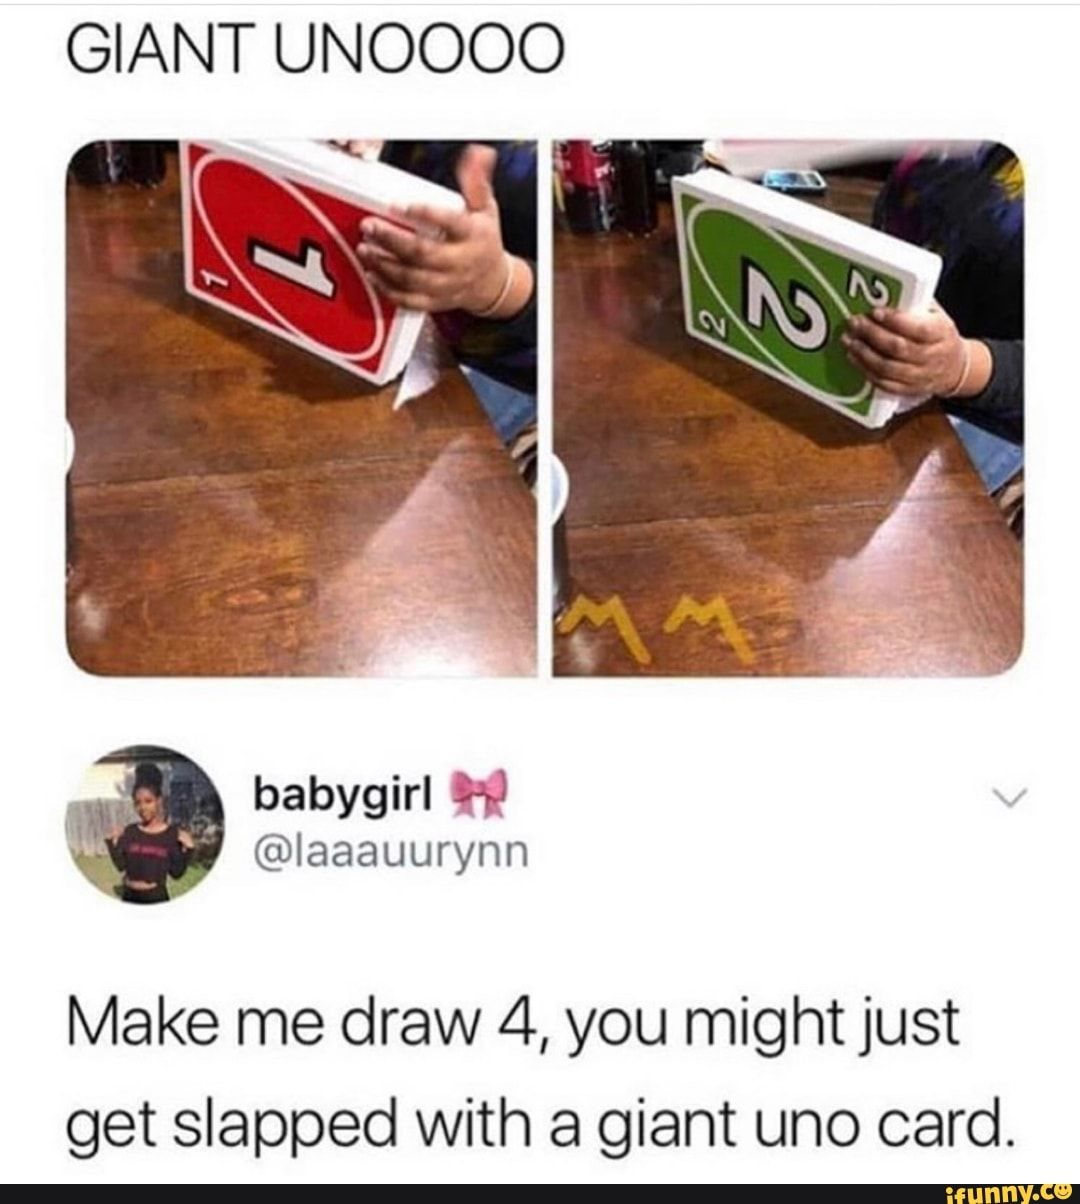 Giant Unoooo Make Me Draw 4 You Might Just Get Slapped With A Giant Uno Card Ifunny Memes Best Funny Pictures Me Too Meme